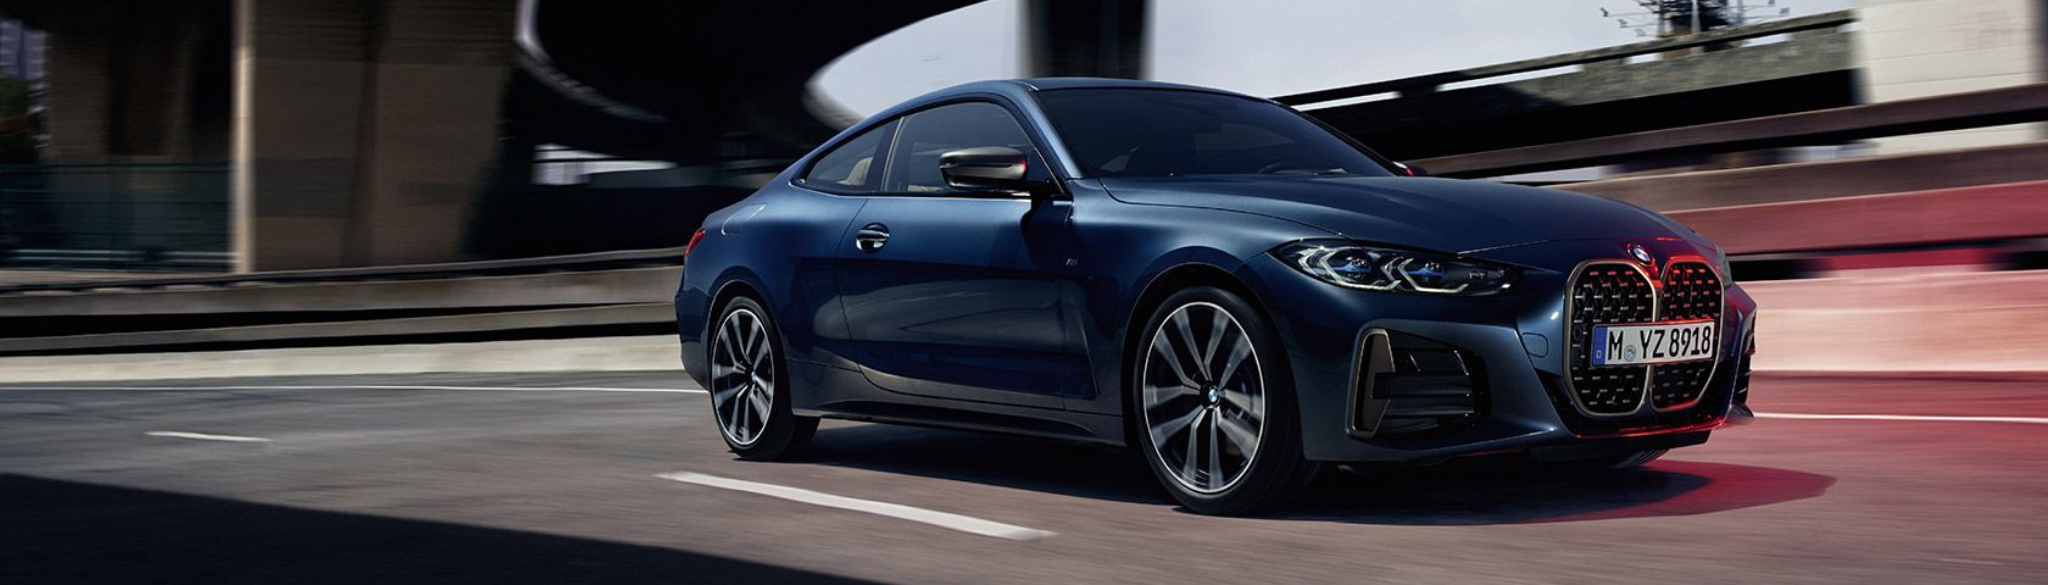 4 Series Coupe Loyalty